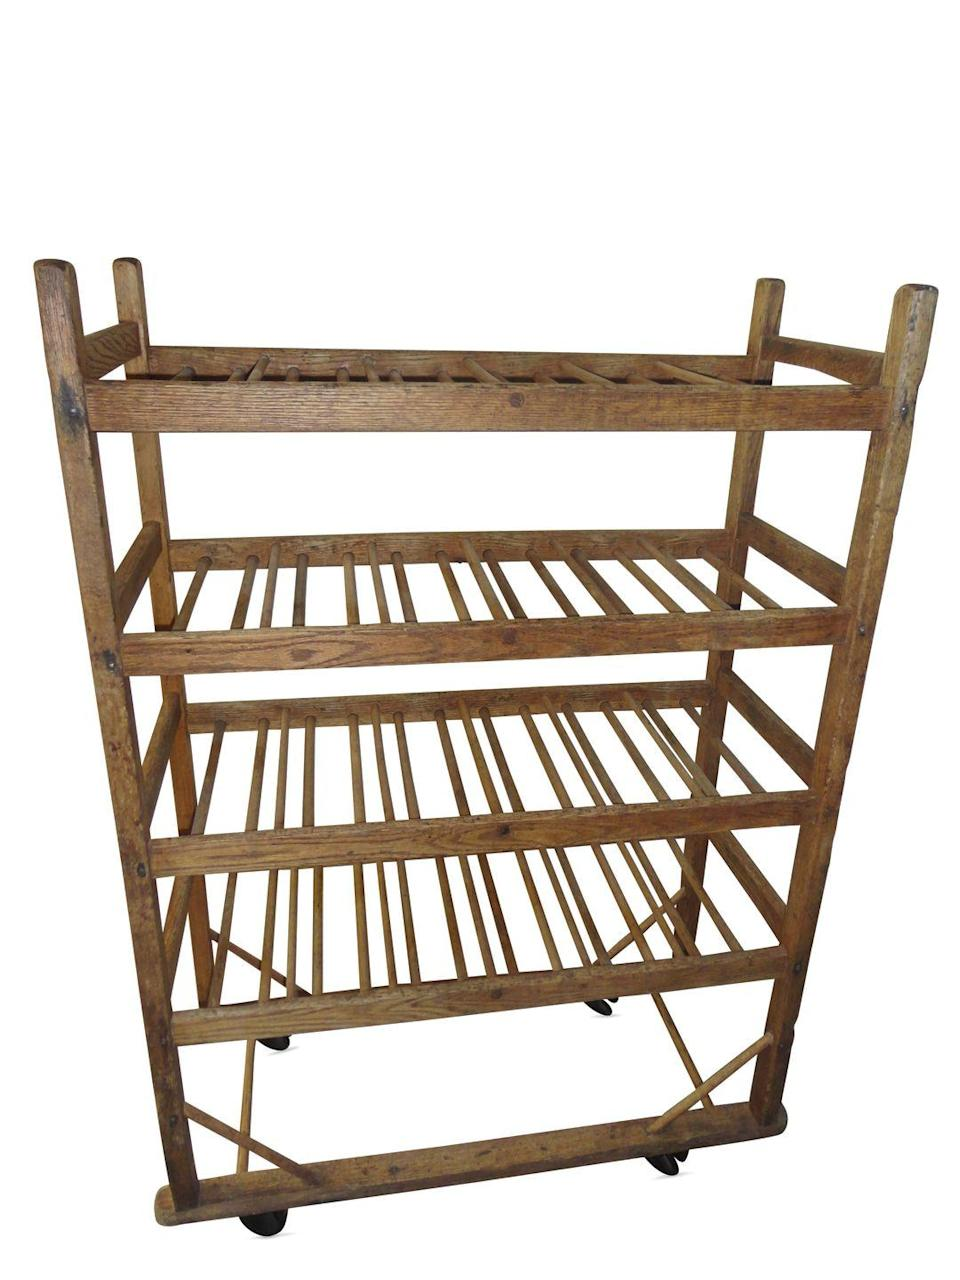 """<p>Appraiser Bene Raia of Raia Auctioneers says your rolling rack is an Early-20th-Century Baker's Rack that was used in the factory of a bread company. """"The rack's open shelves were essential for letting air circulate around the freshly baked loaves, and the four steel casters allowed the bread to be moved quickly to packaging and distribution areas,"""" she says. The primary wood material is oak along with some other mixed woods. Bene adds that the fact that your rack has been stripped and stained has minor impact on its value, because these pieces were produced in great quantity and are therefore not particularly rare.</p><p><strong>What it's worth: </strong>$300 <em>($425 in original condition)</em></p>"""